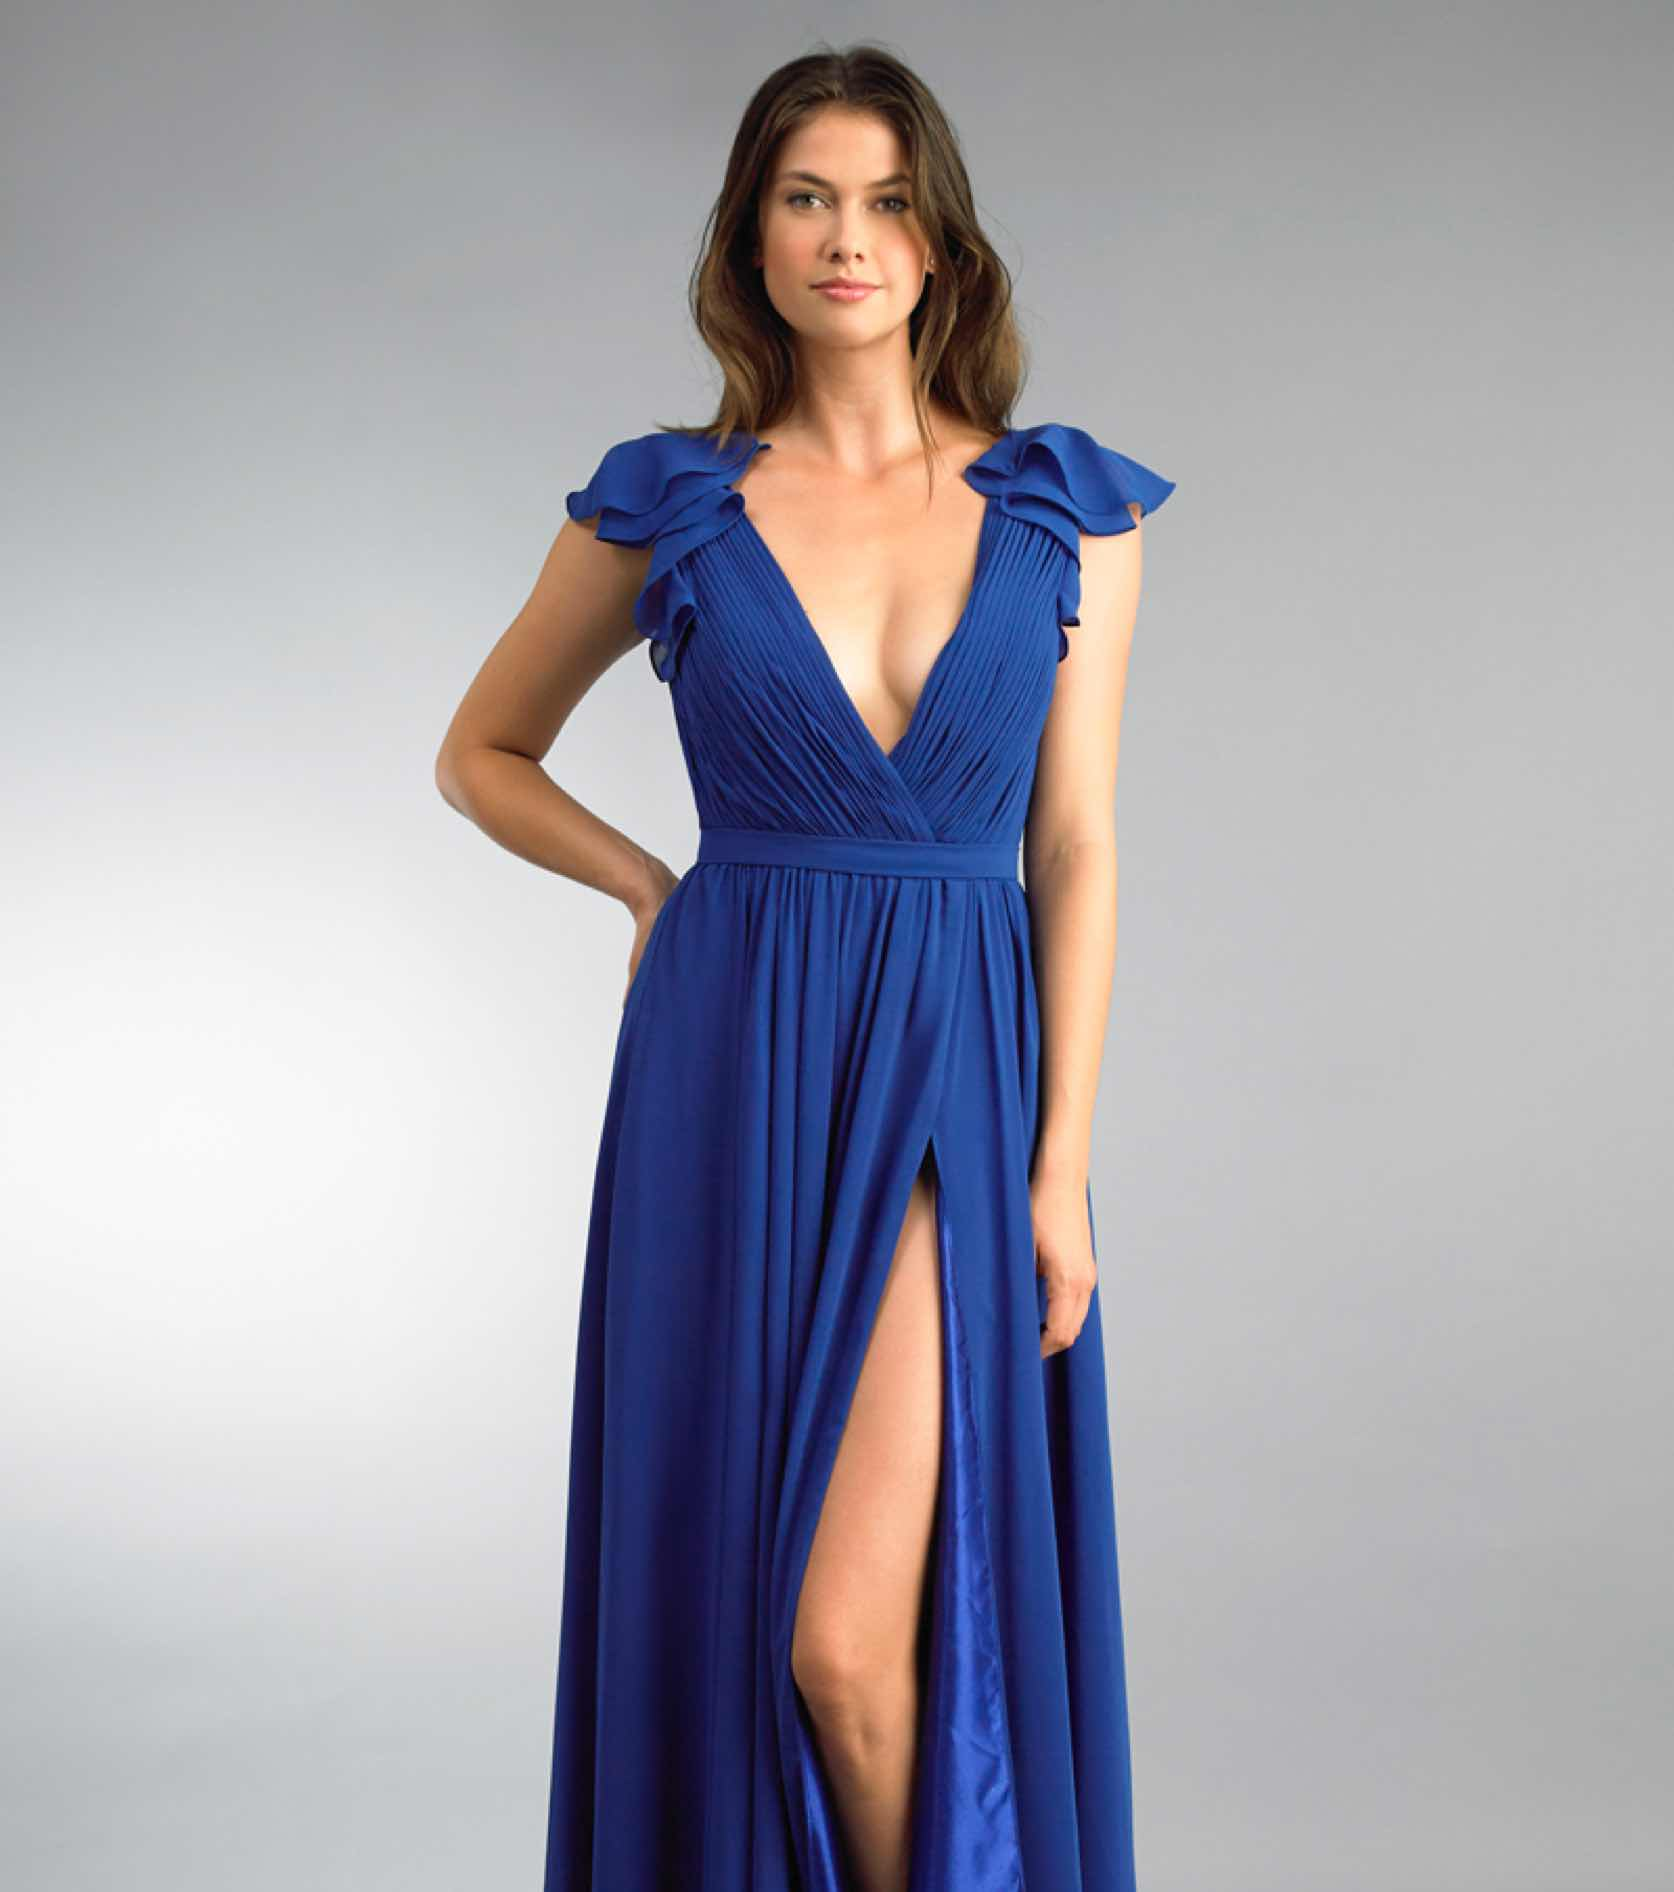 Model in blue Basix Black Label gown